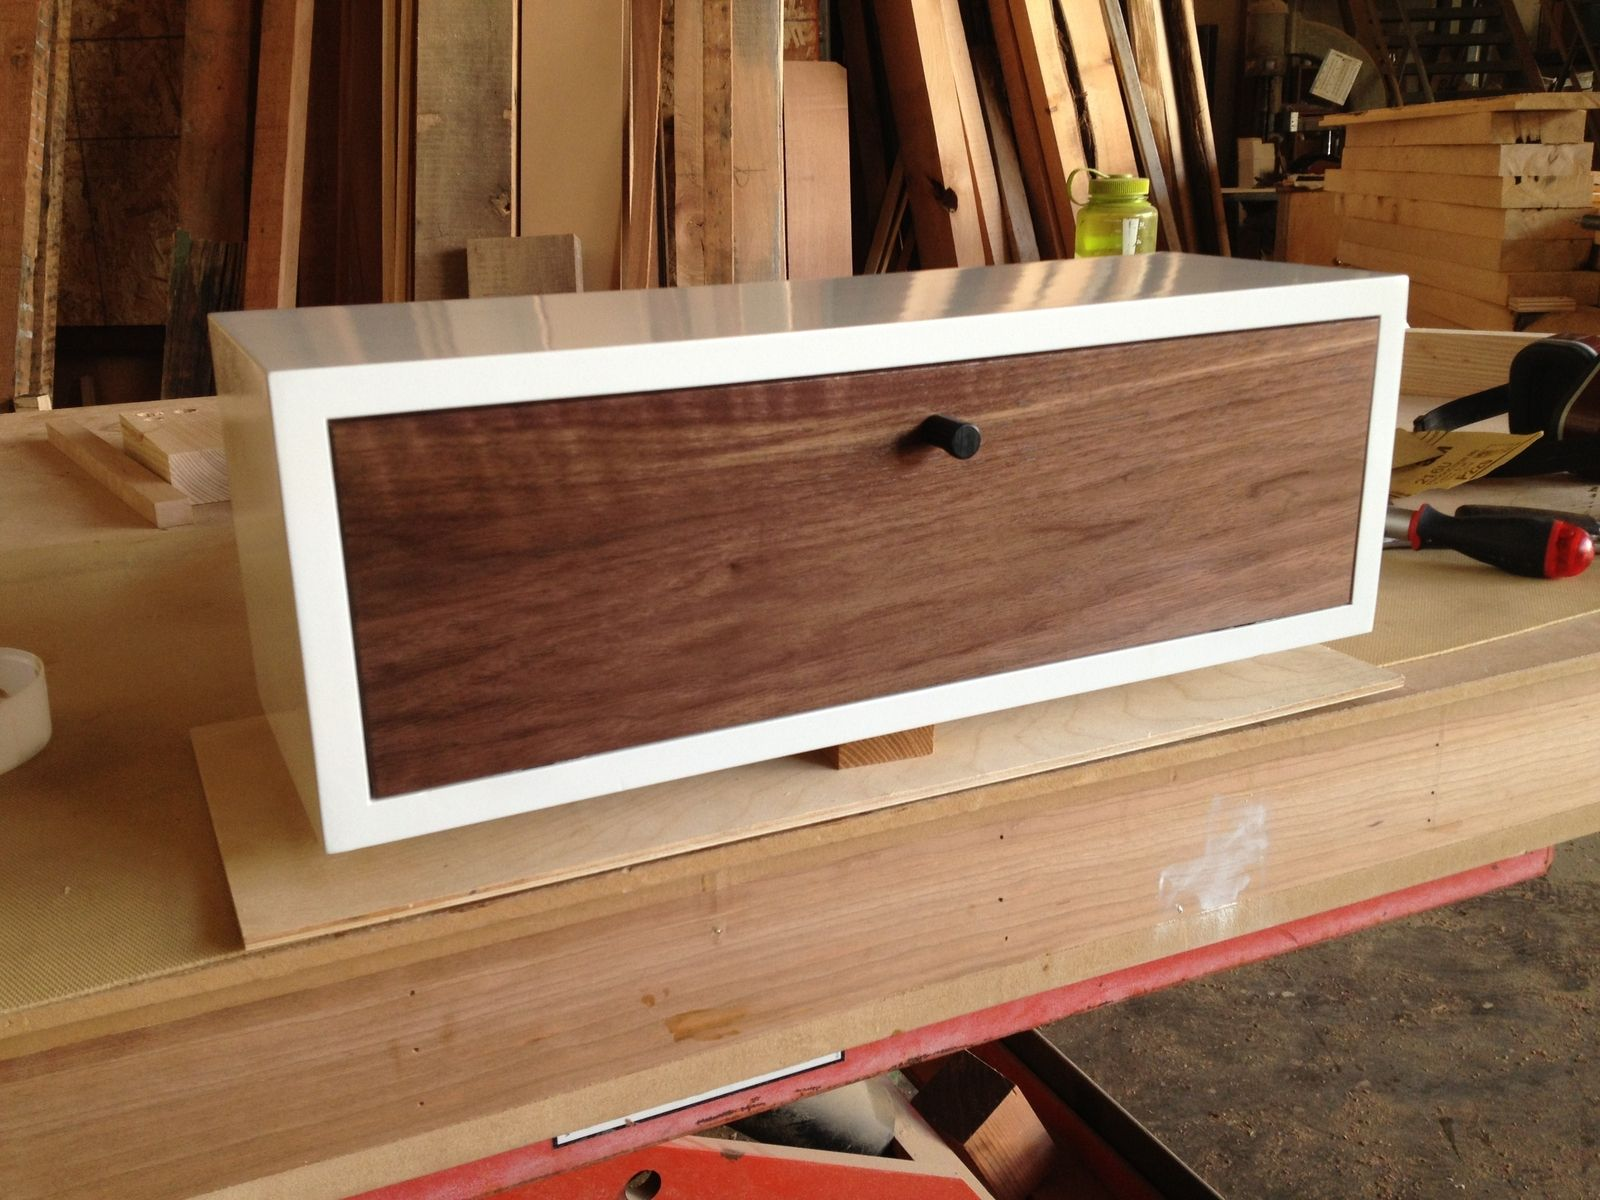 custom made small floating bathroom shelf cabinet sawn shelves with cabinets portable butcher block island storage tree bench student desk drawers ideas leather brackets canadian